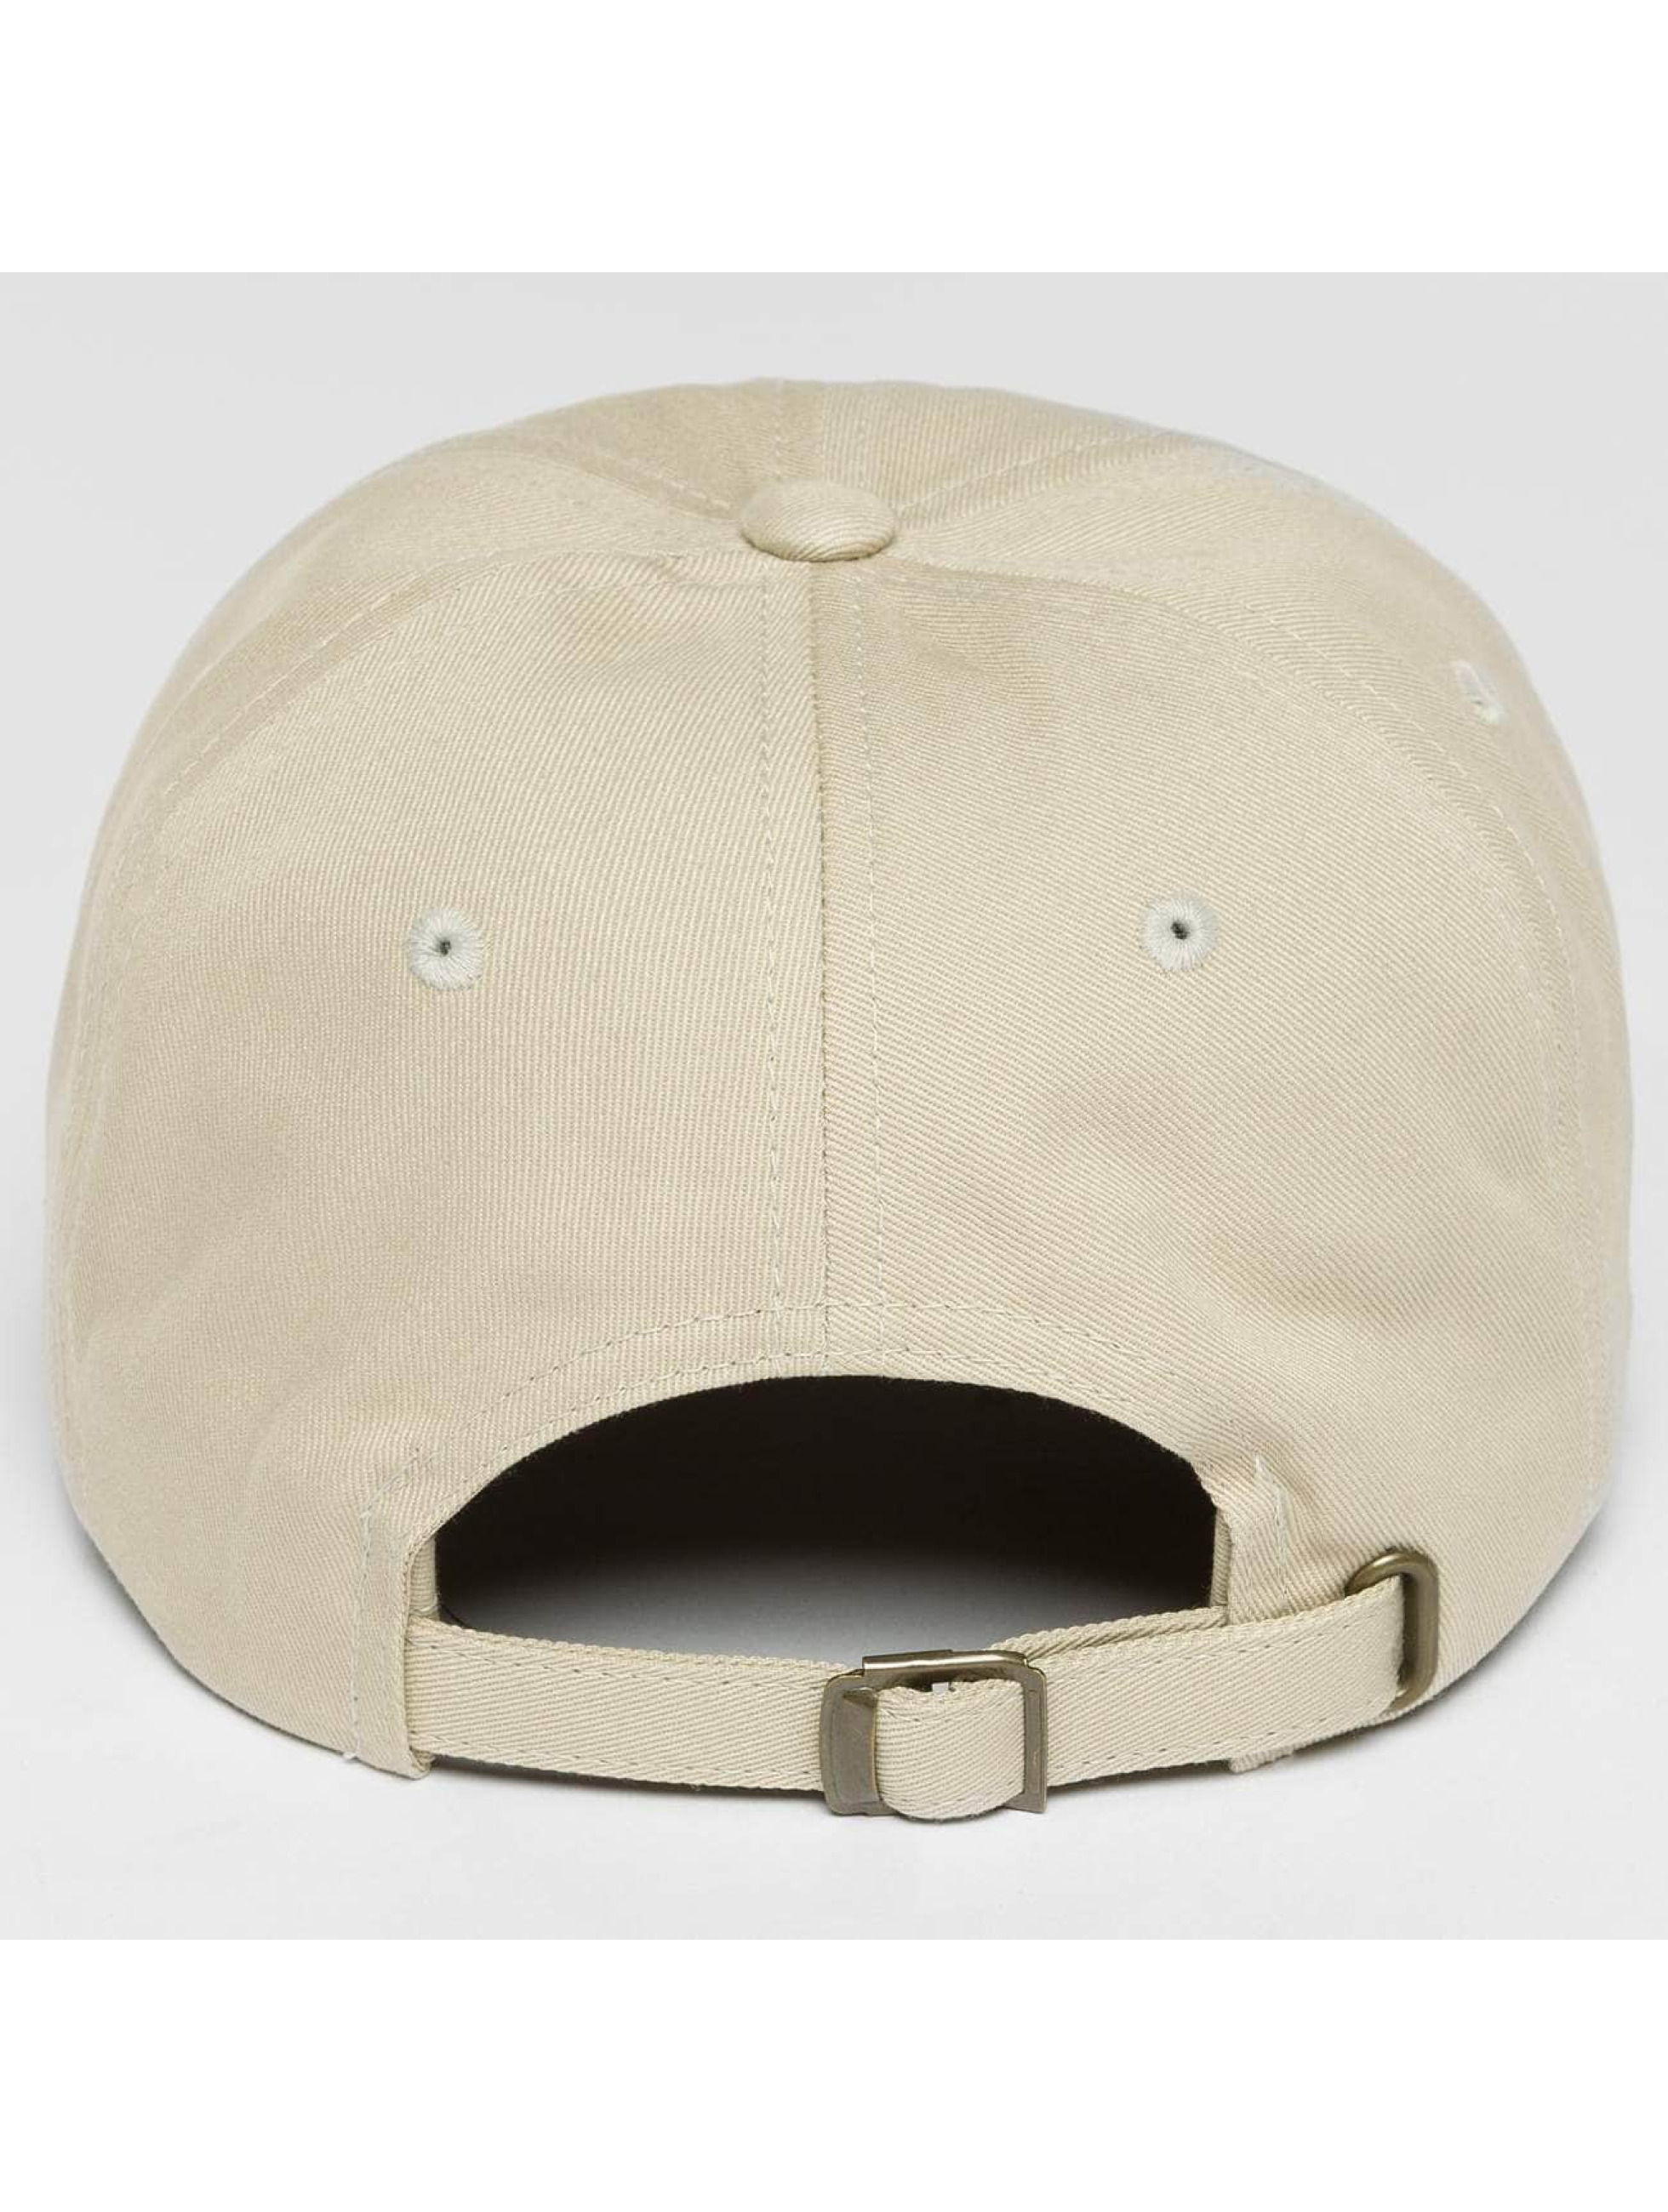 Flexfit Snapback Caps Low Profile Cotton Twill bezowy